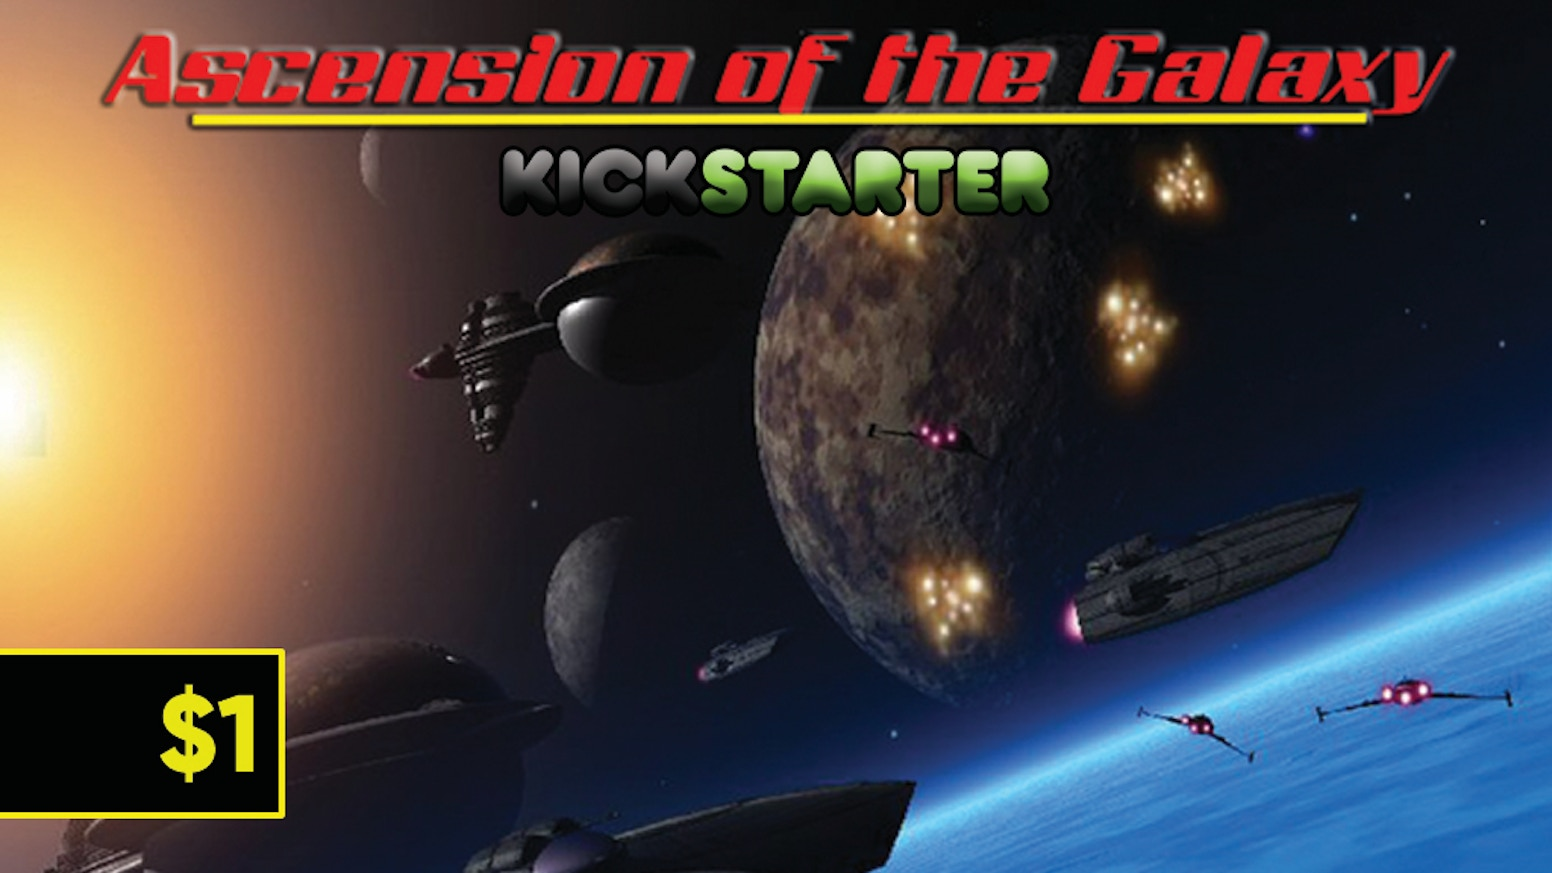 Ascension of the Galaxy is the rich, maneuver-based spaceship combat game where thinking ahead is not optional.